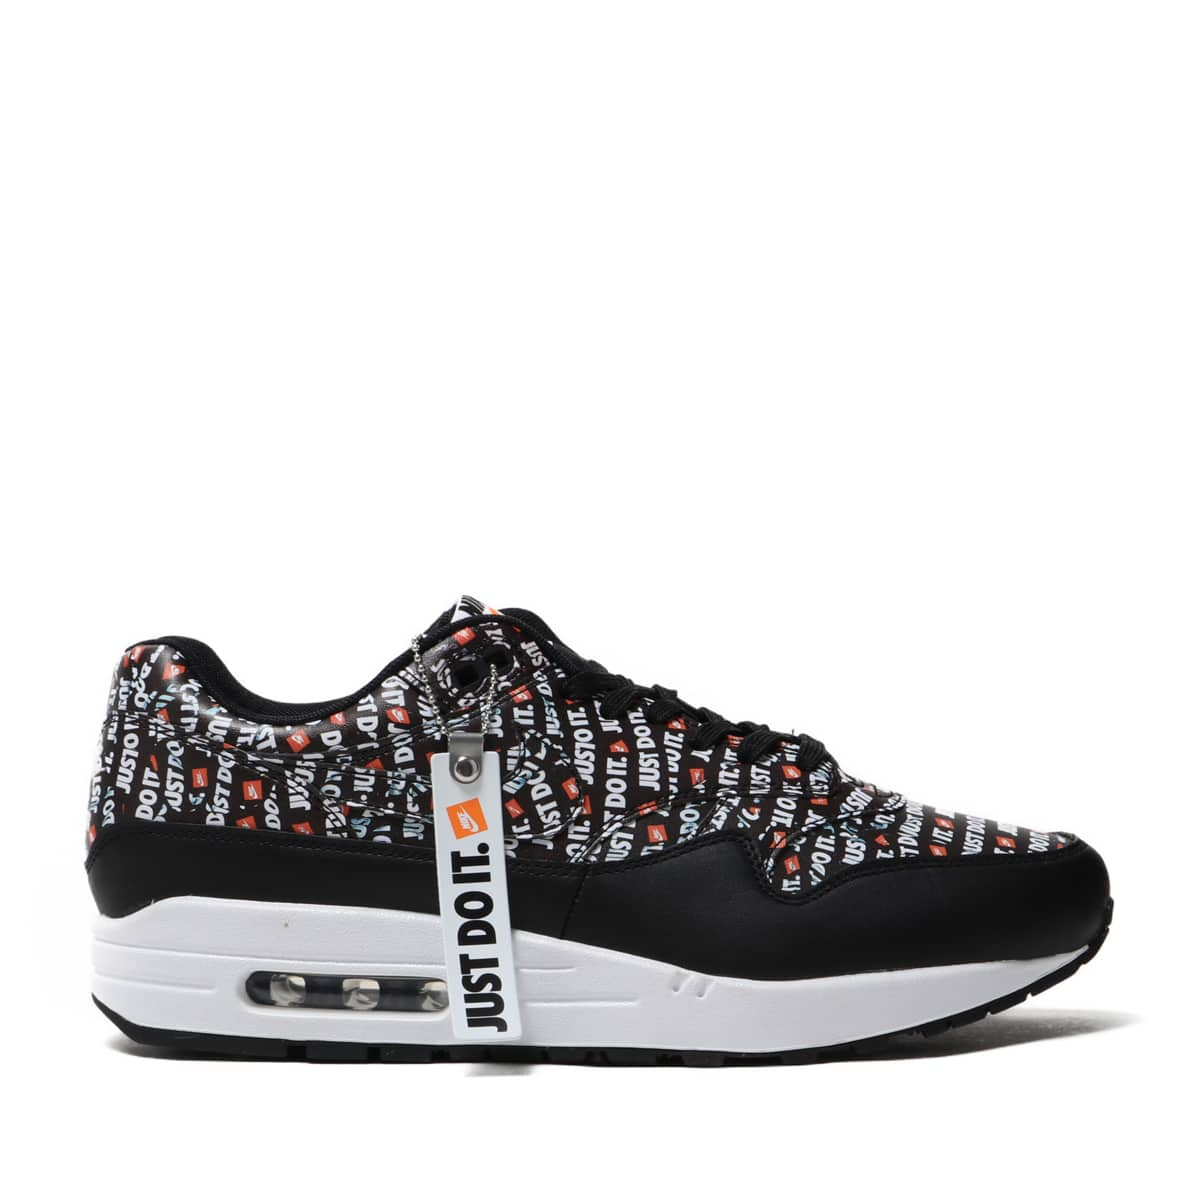 innovative design super popular detailed look Athletic Shoes Mens Nike Air Max 1 Premium Just Do It Black Total ...